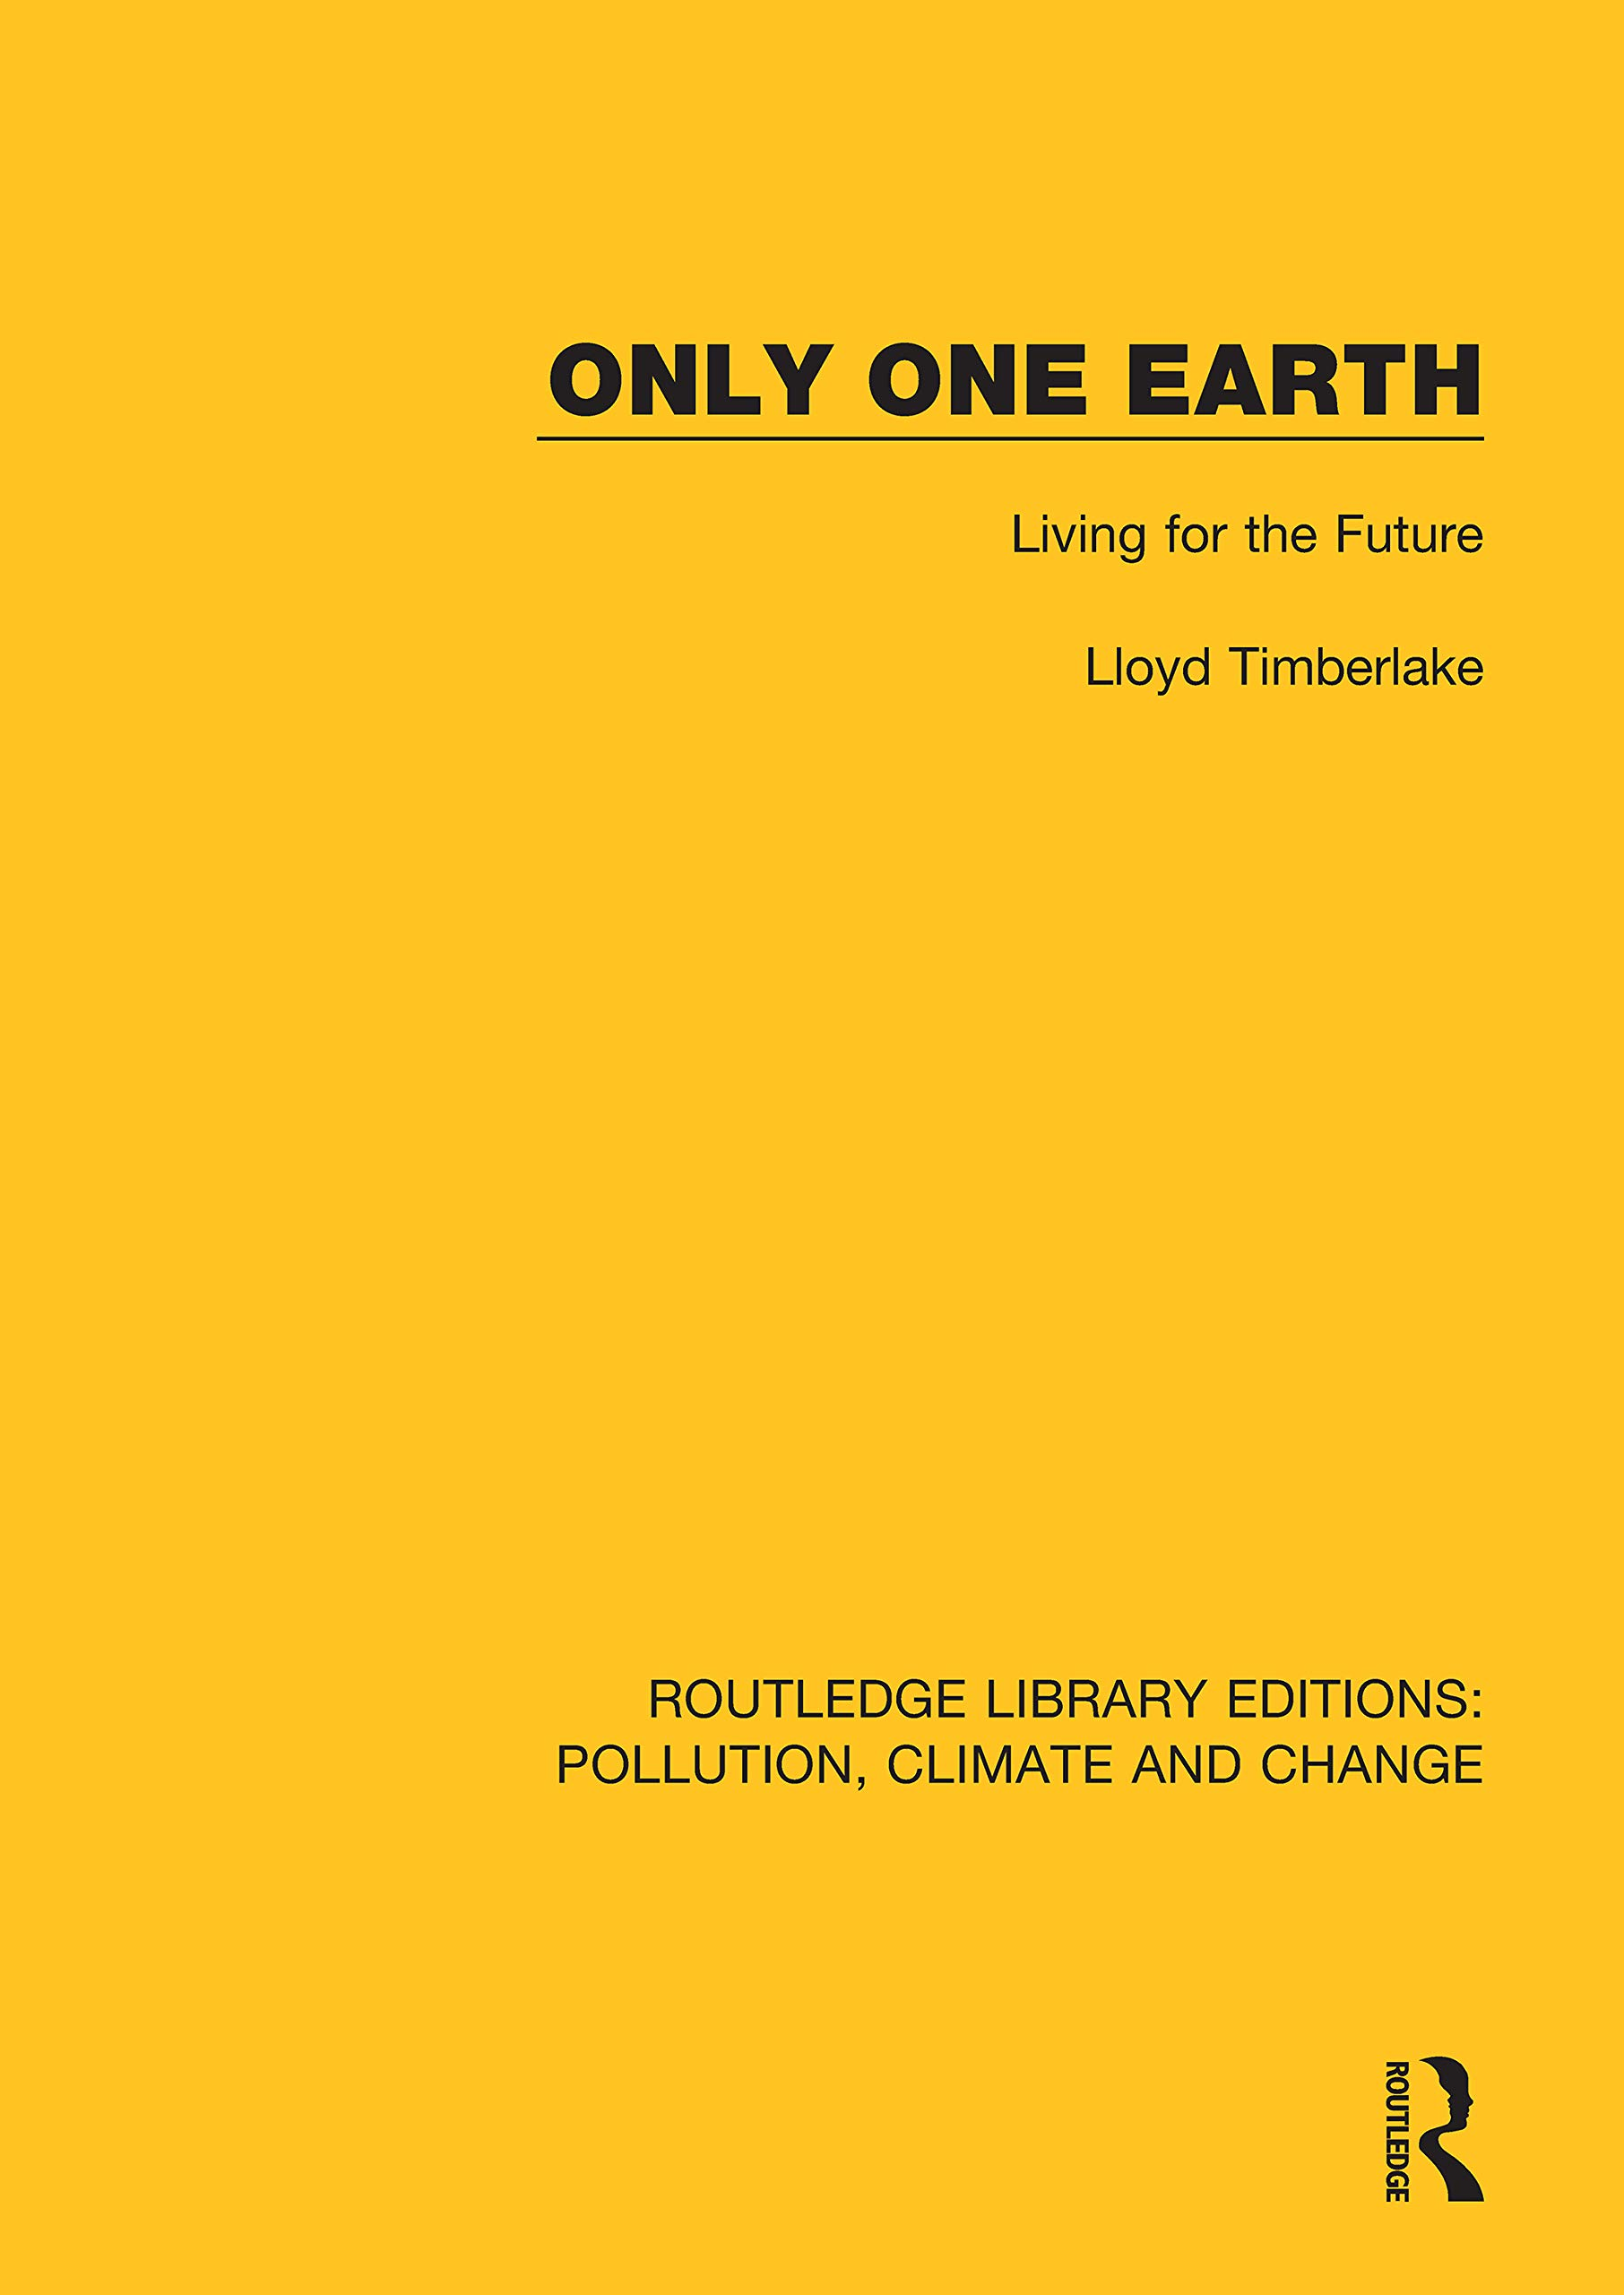 Only One Earth: Living for the Future